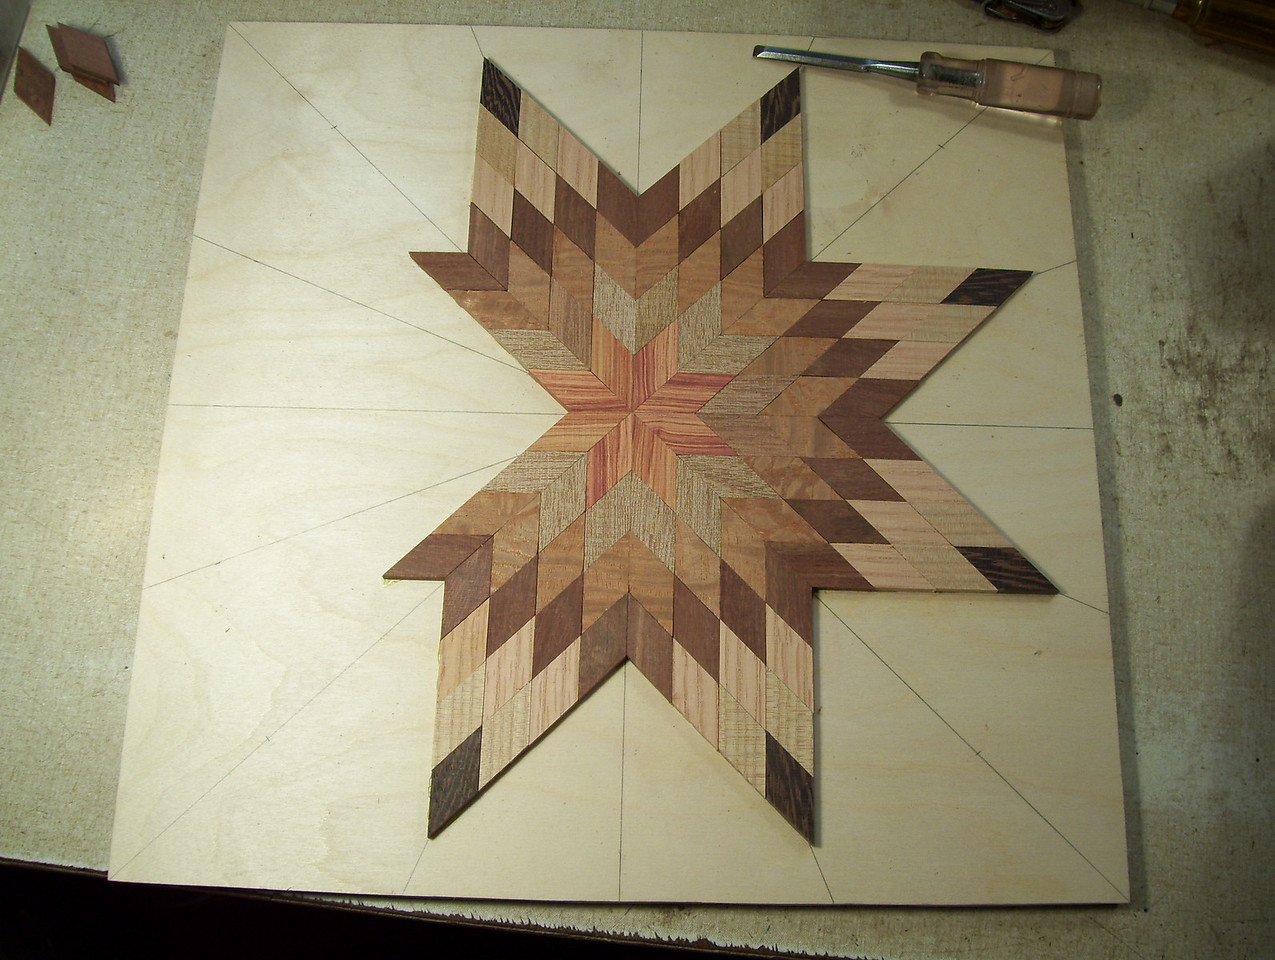 Making a Lazy Susan #13<br /> I continue this process one point at a time on around the star to the last two points.